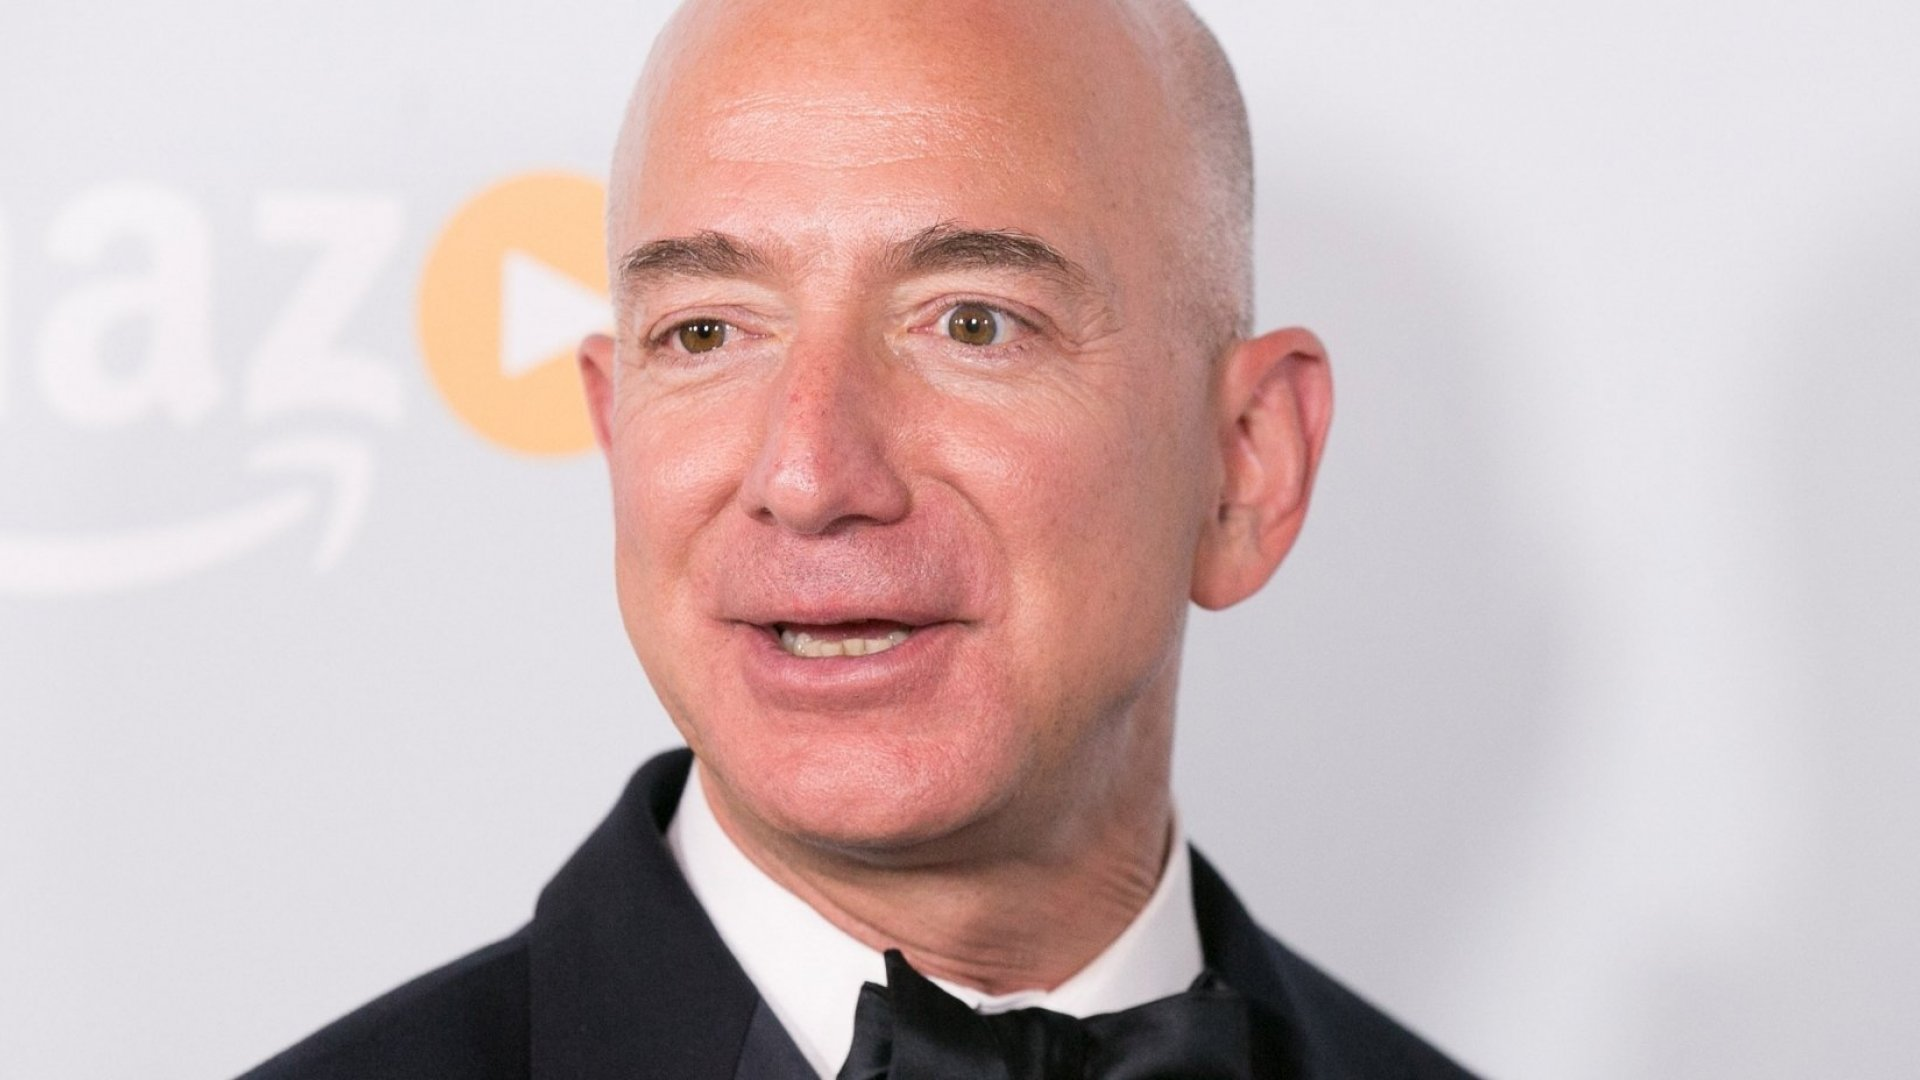 New Data Reveals Amazon's Digital Domination Over Walmart--and the Gap is Almost Unfair